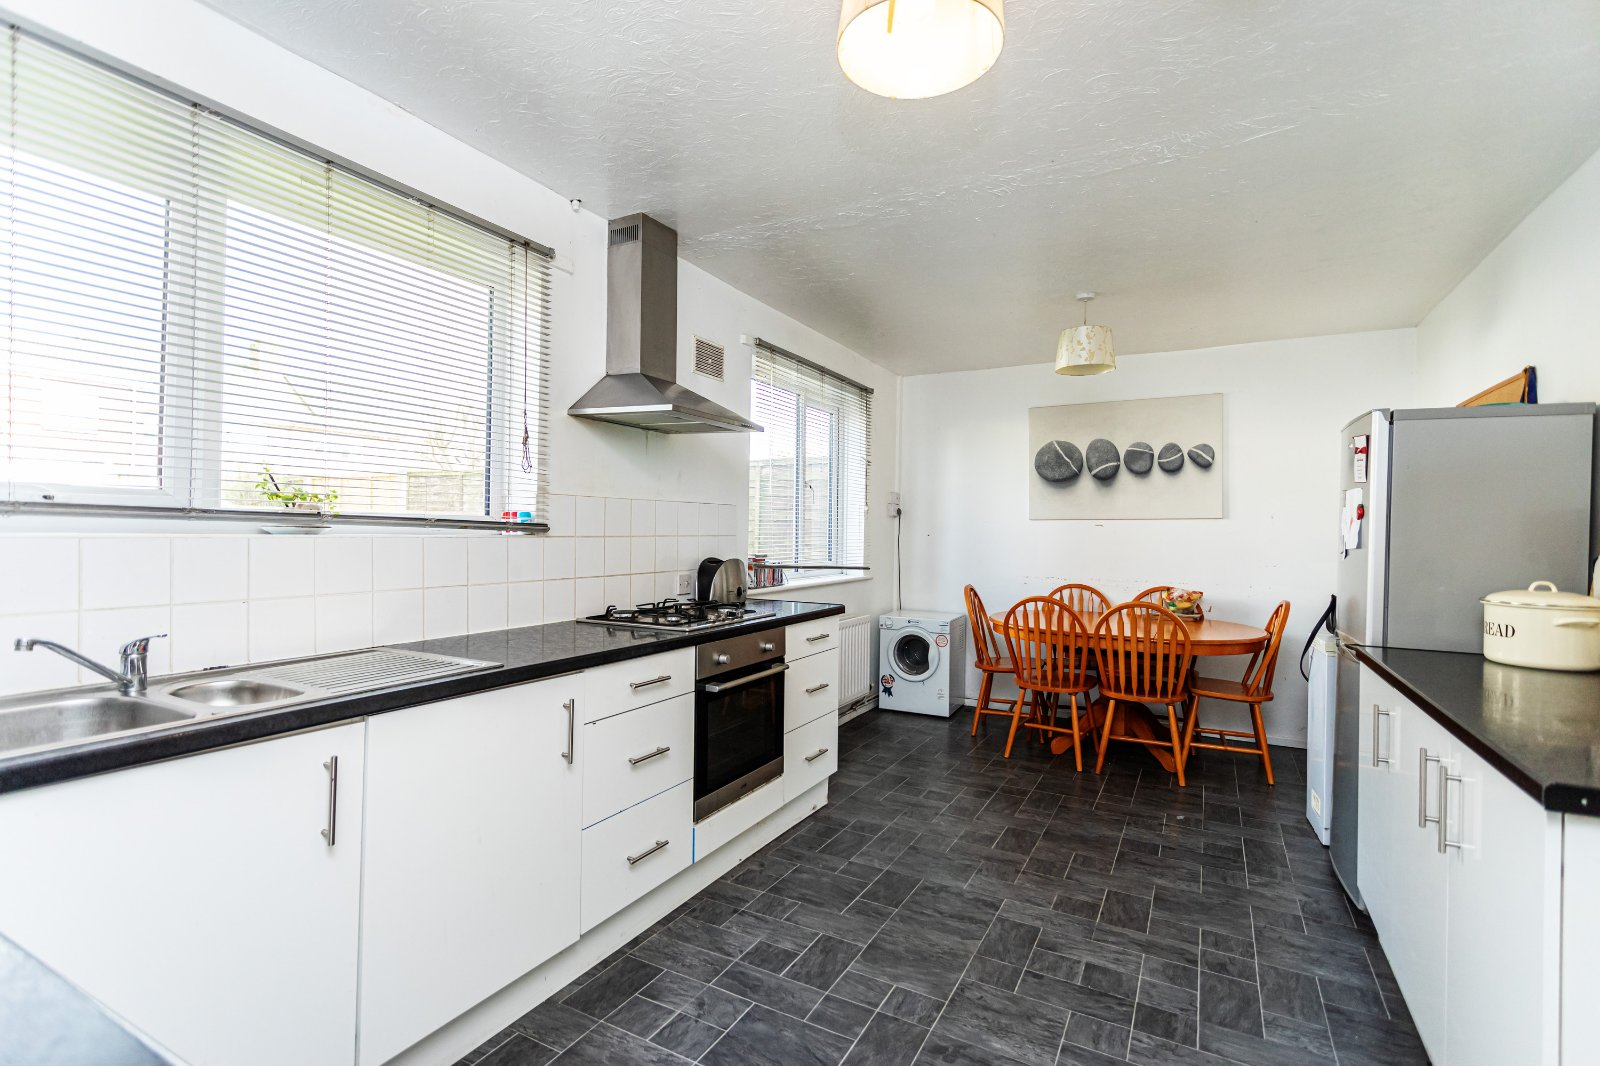 3 bed house for sale in Benbow Crescent, Wallisdown, BH12